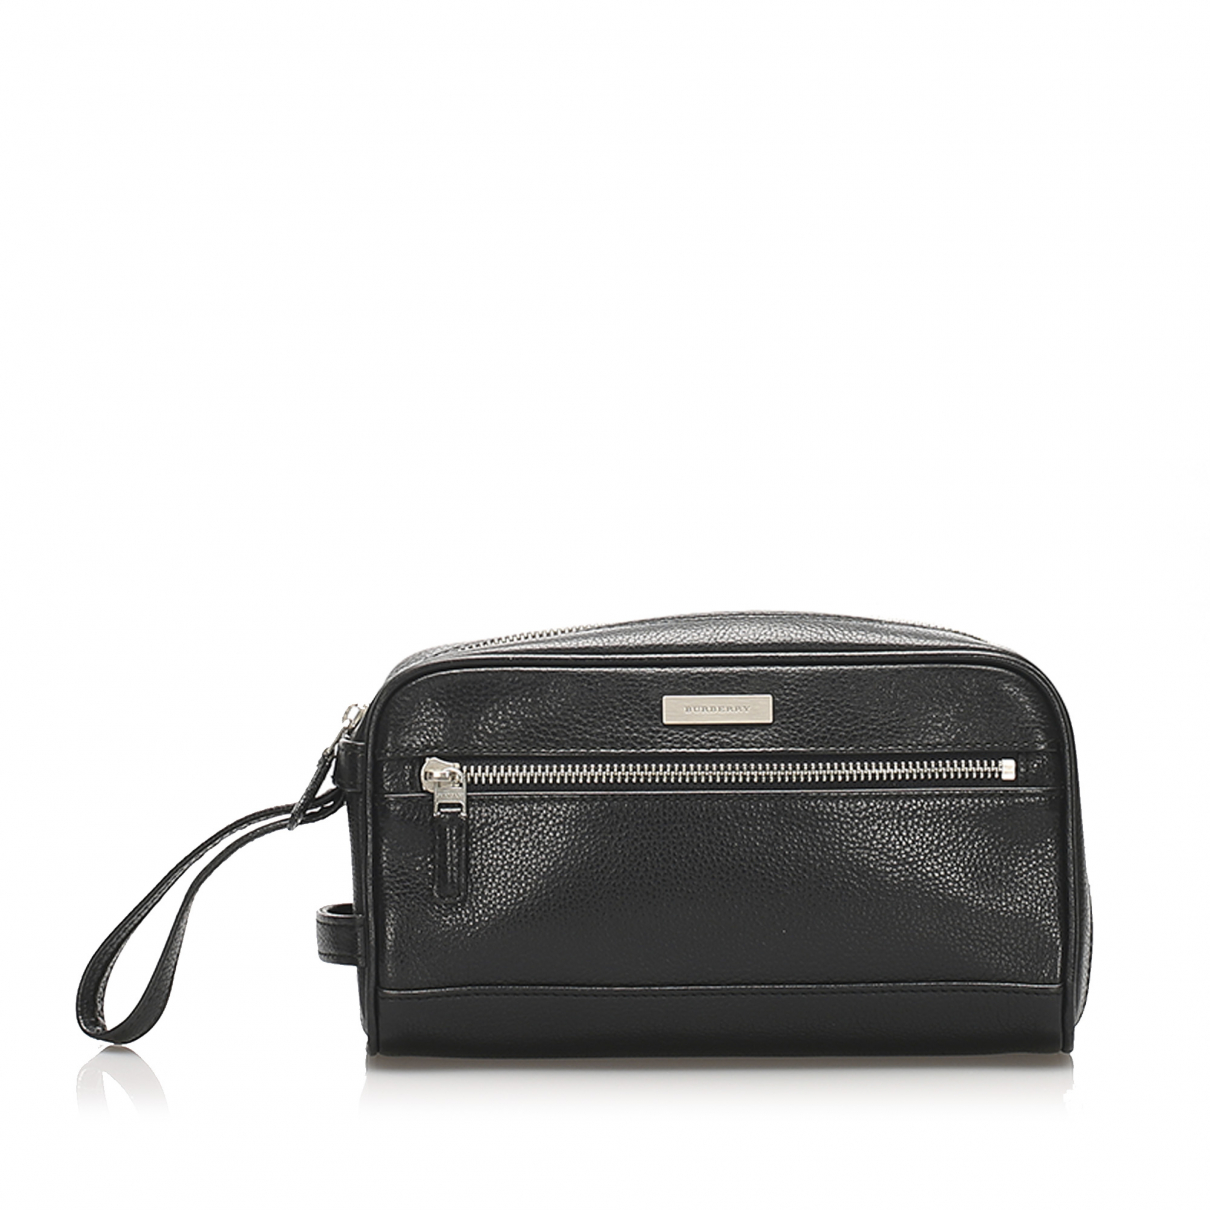 Burberry \N Clutch in  Schwarz Leder